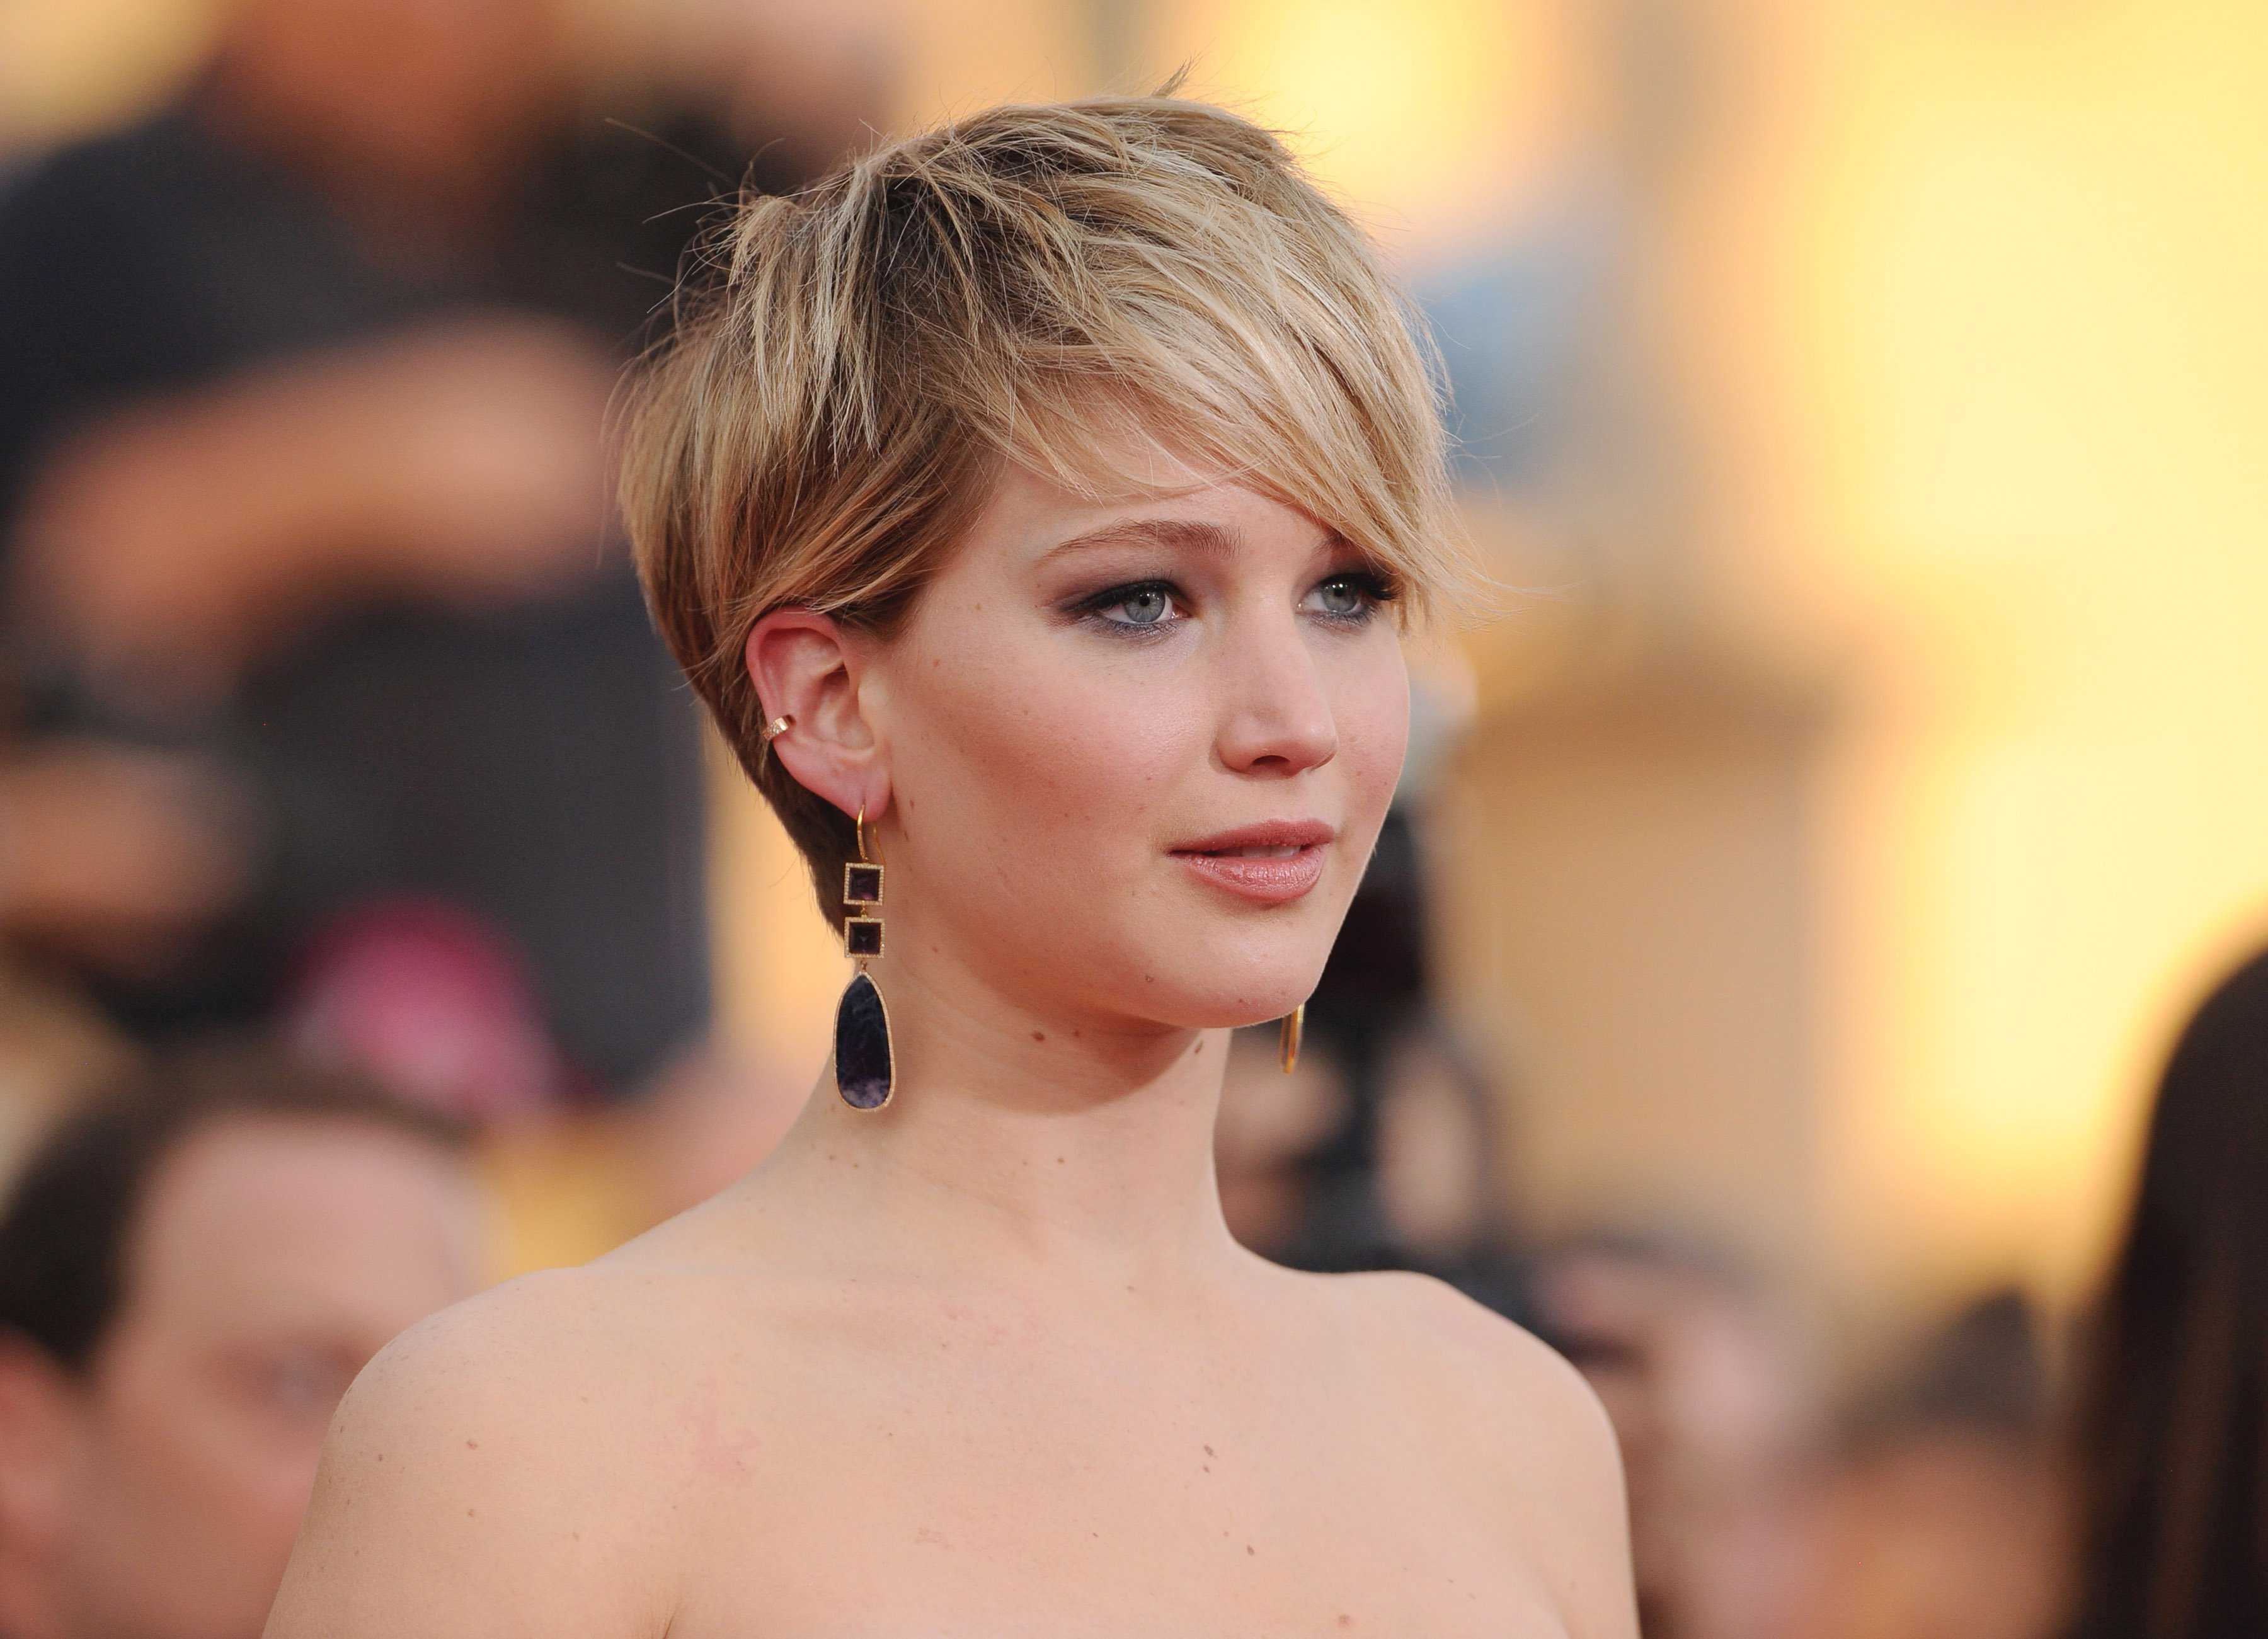 35 Fabulous Short Haircuts For Thick Hair Within Edgy Short Haircuts For Thick Hair (View 6 of 25)